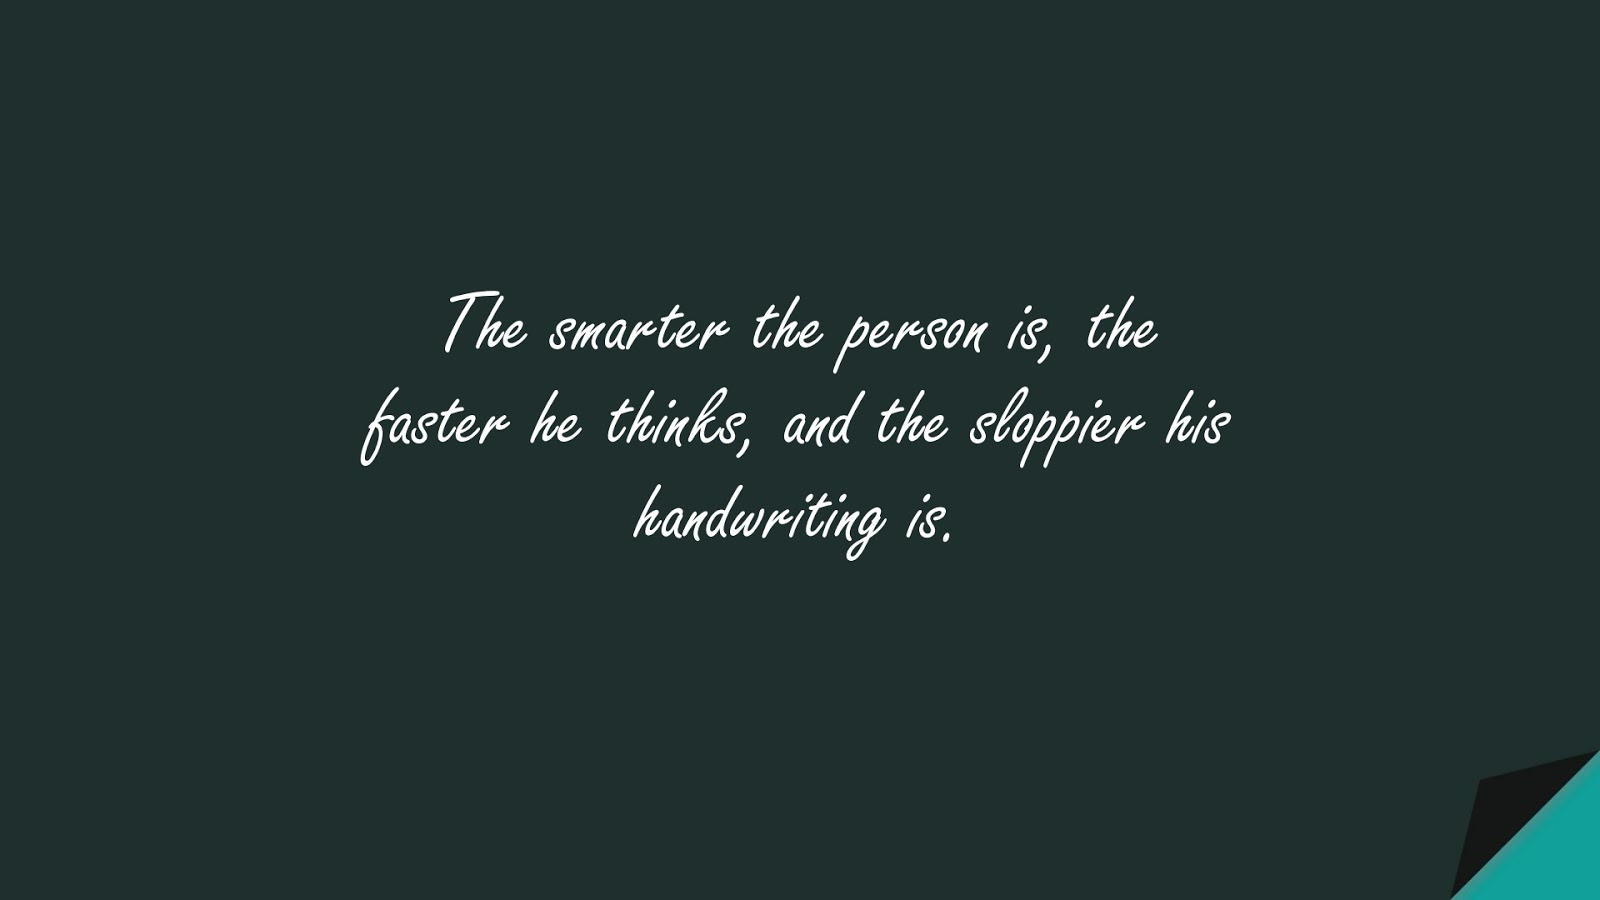 The smarter the person is, the faster he thinks, and the sloppier his handwriting is.FALSE